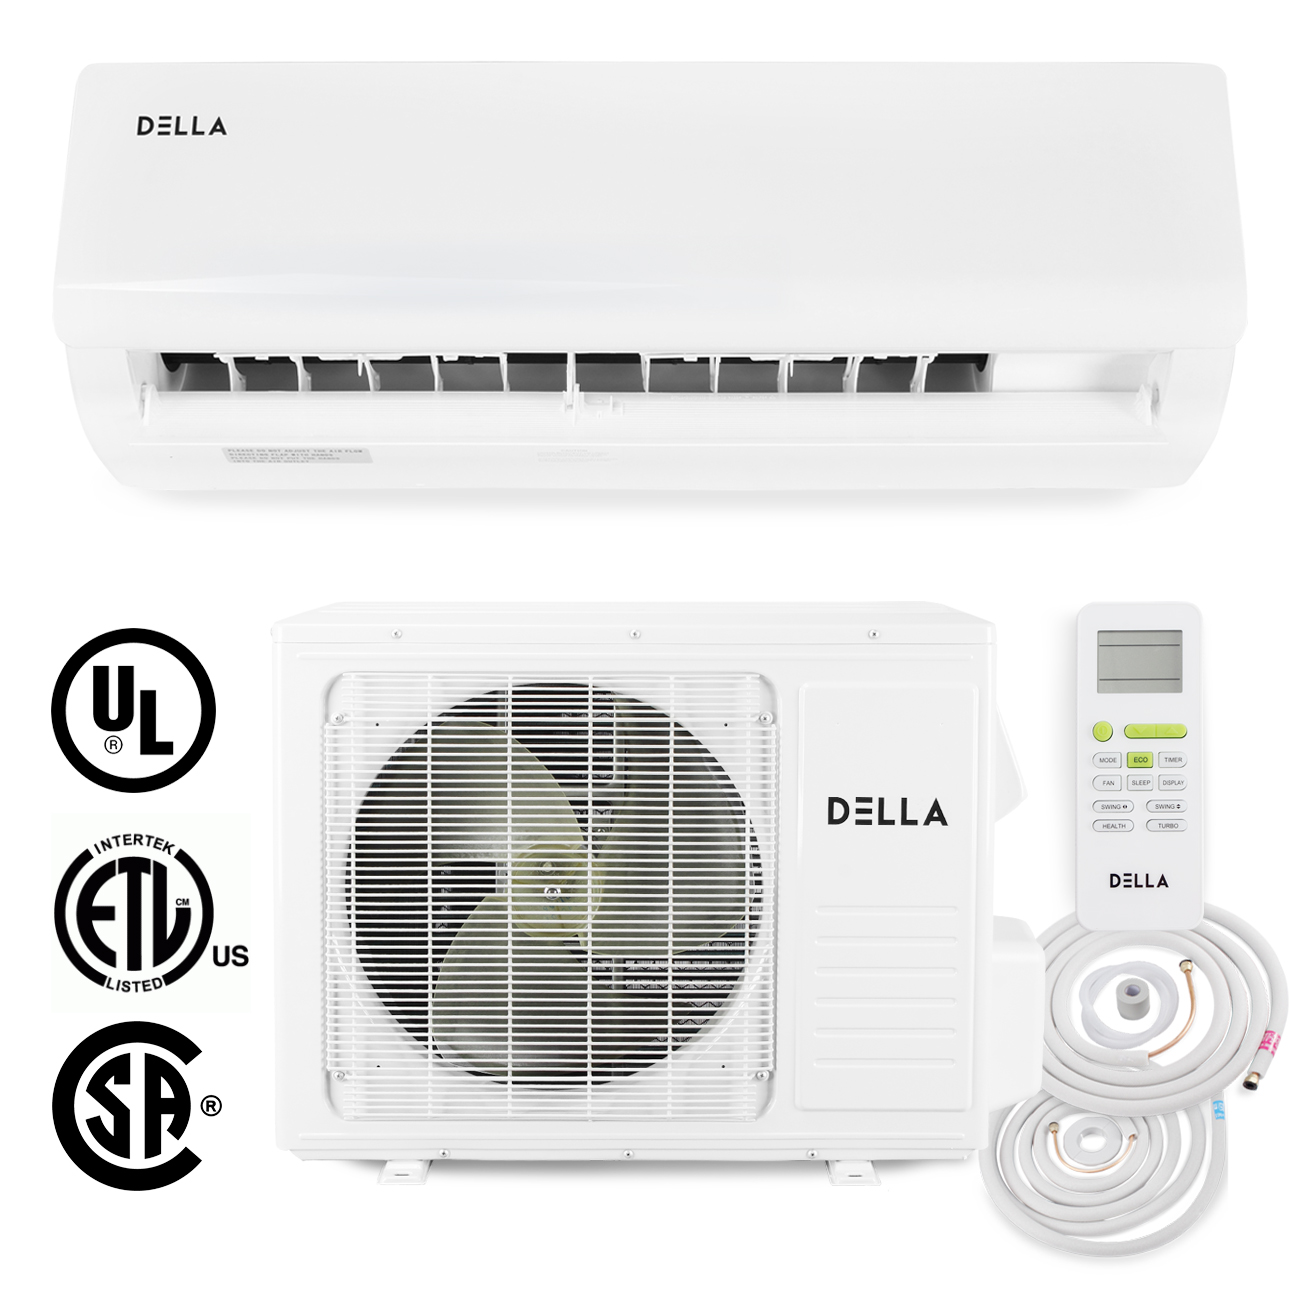 DELLA 18,000 BTU 15 SEER Wall-Mounted Ductless Mini Split Inverter Air Conditioner Heat Pump System